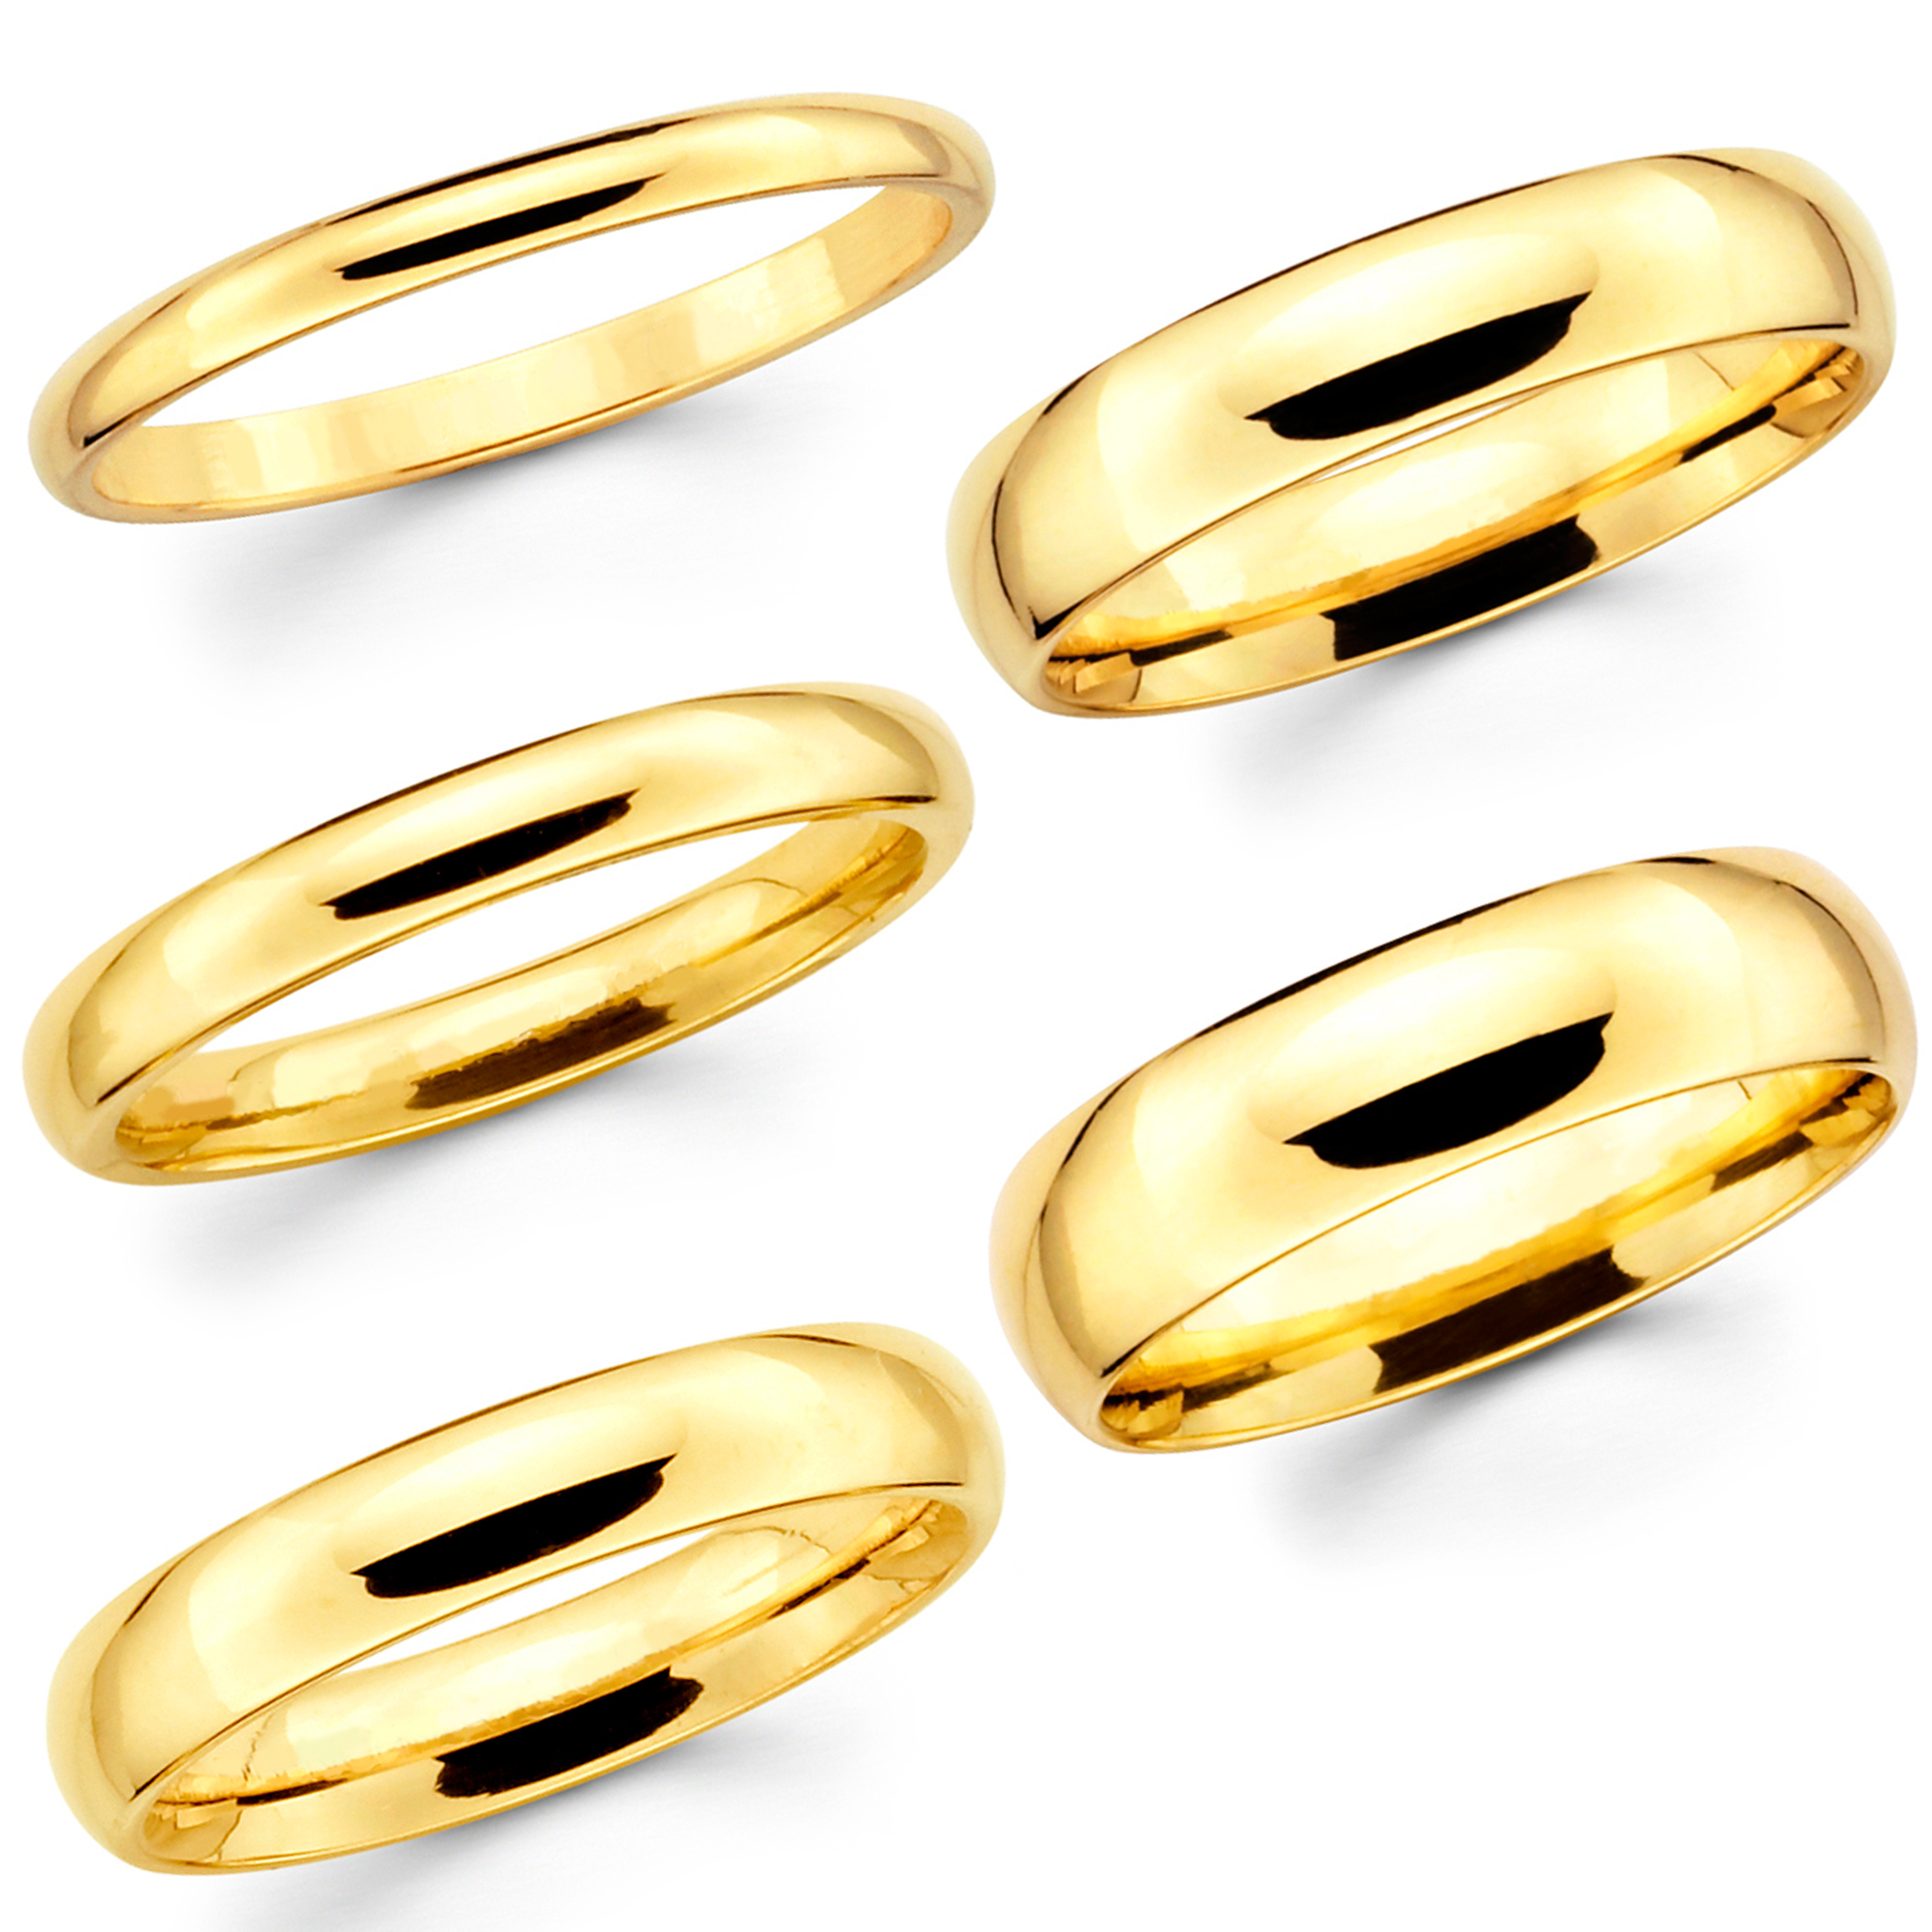 rings gold yellow s band men in g carat vs flush diamond wedding set dome h mens